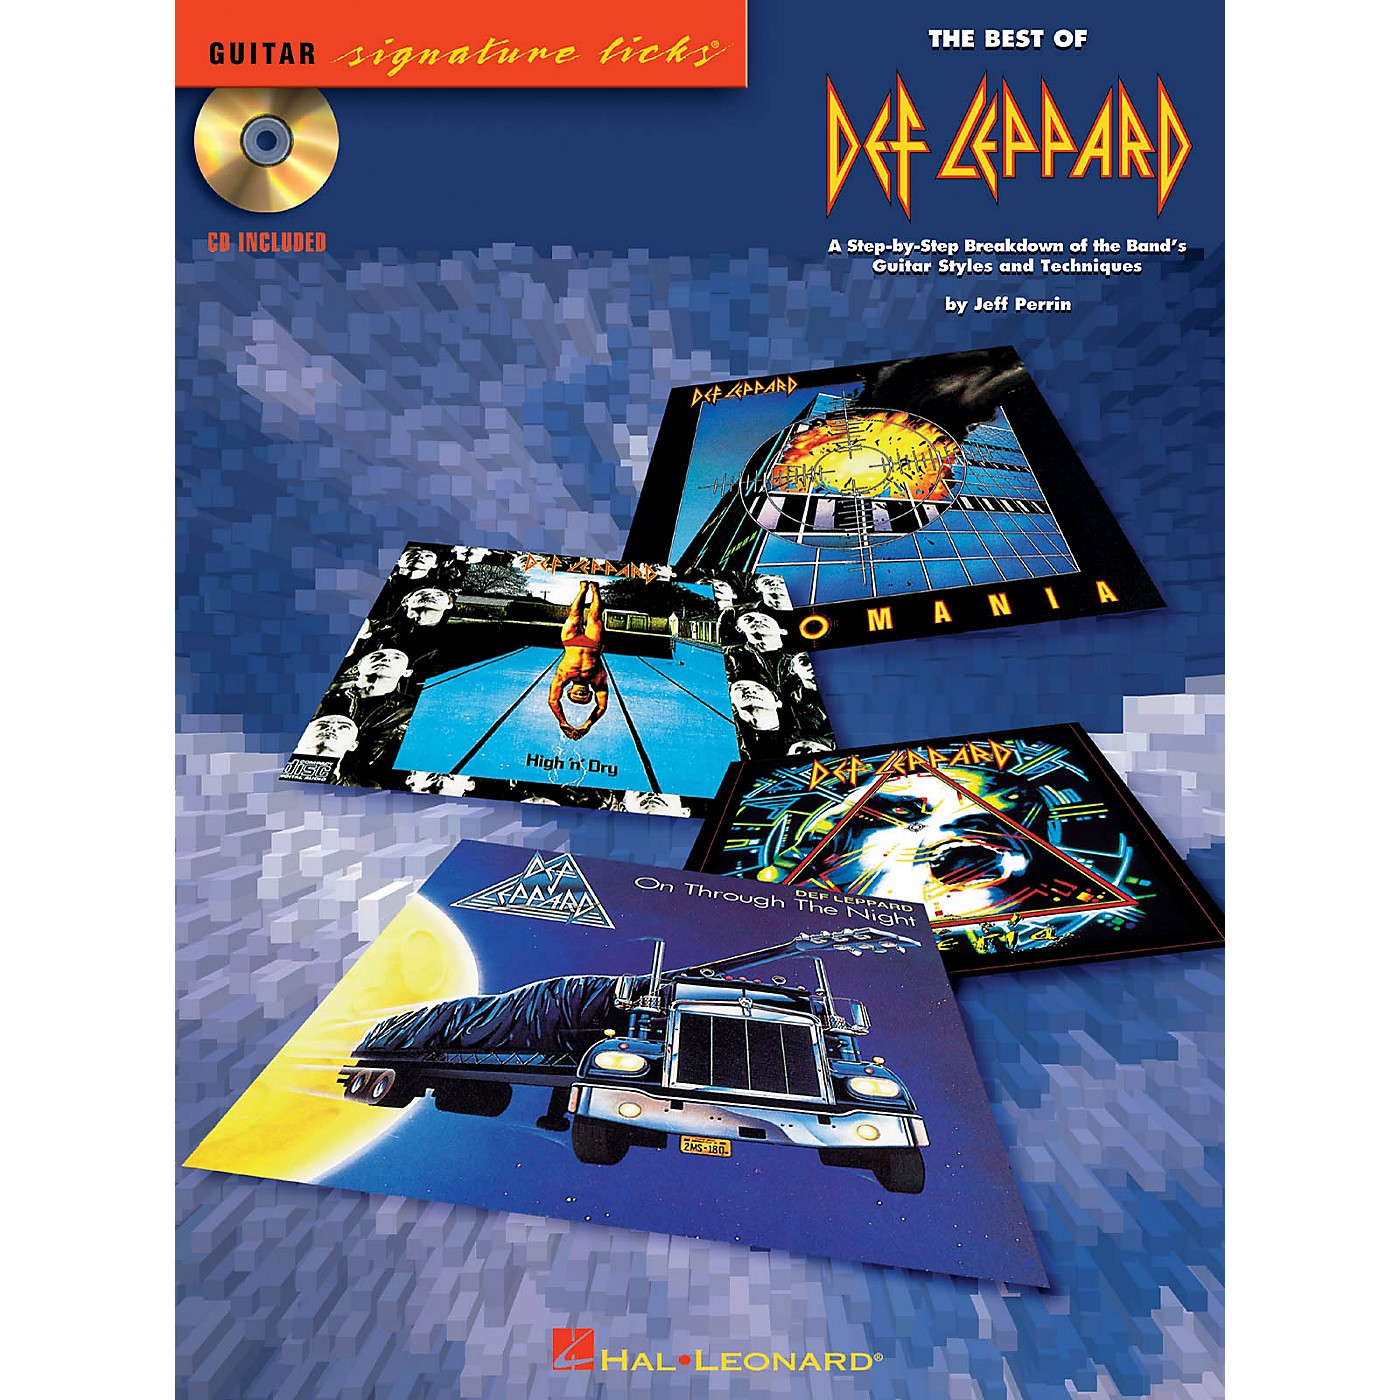 Hal Leonard The Best of Def Leppard Signature Licks Guitar Series Softcover with CD Performed by Def Leppard thumbnail